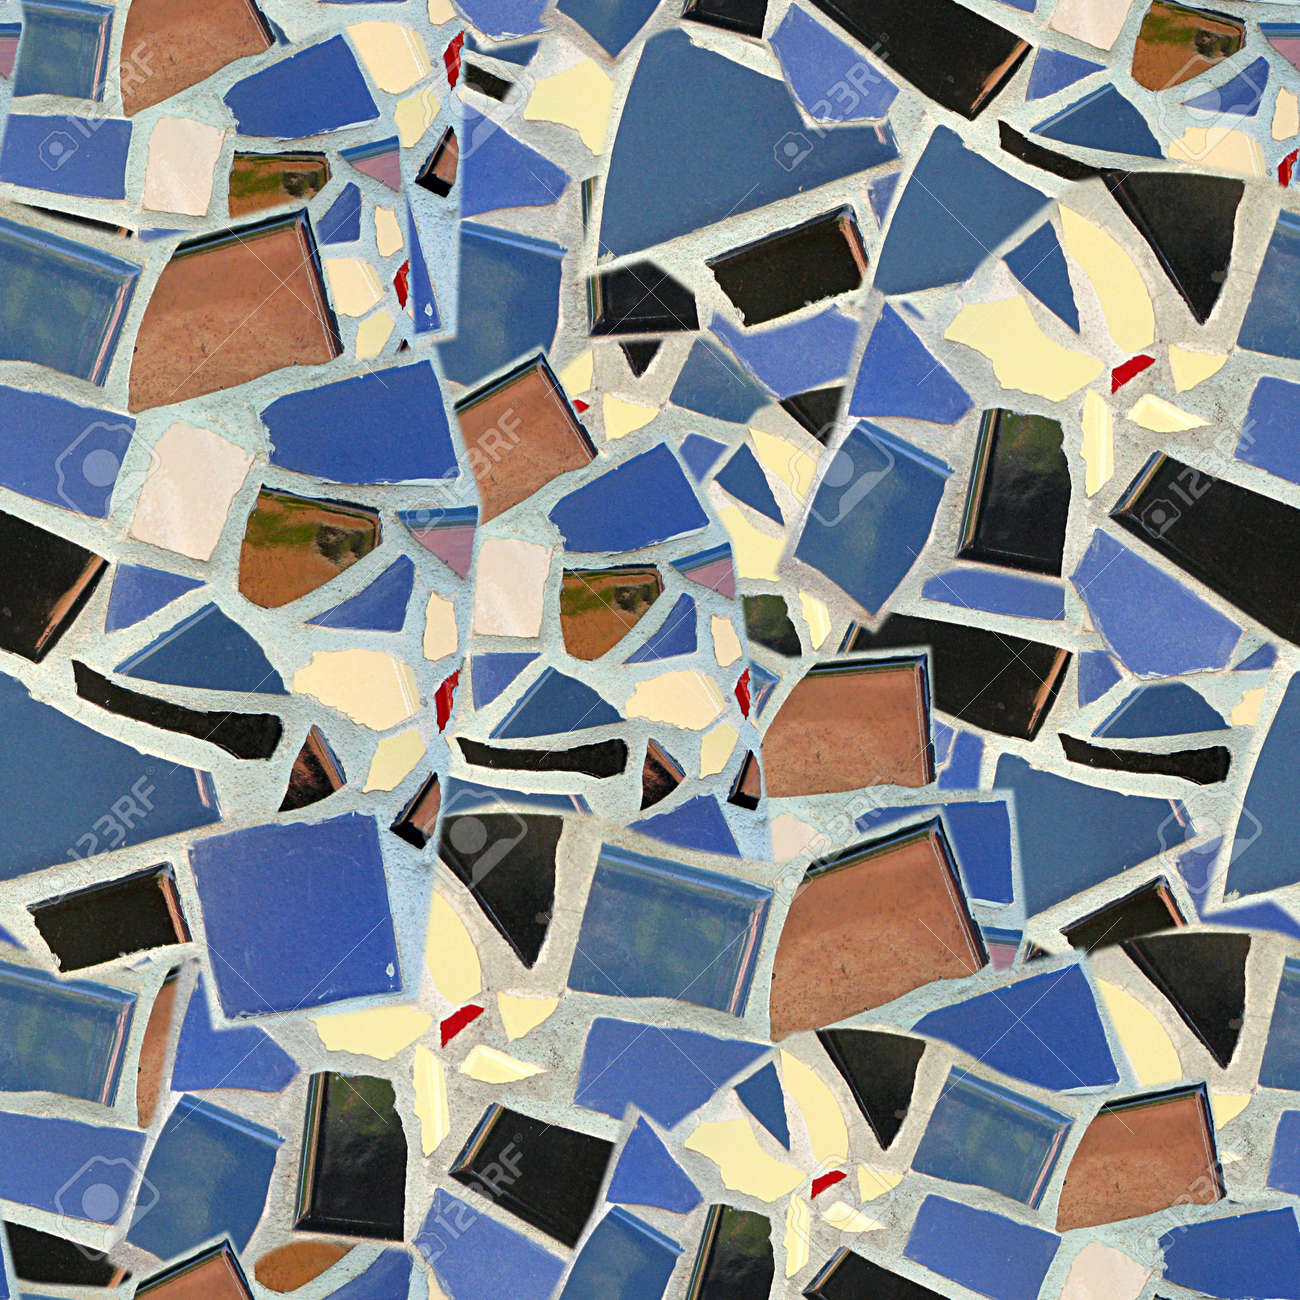 Broken Tile Mosaic Seamless Texture Tile Stock Photo, Picture And ...